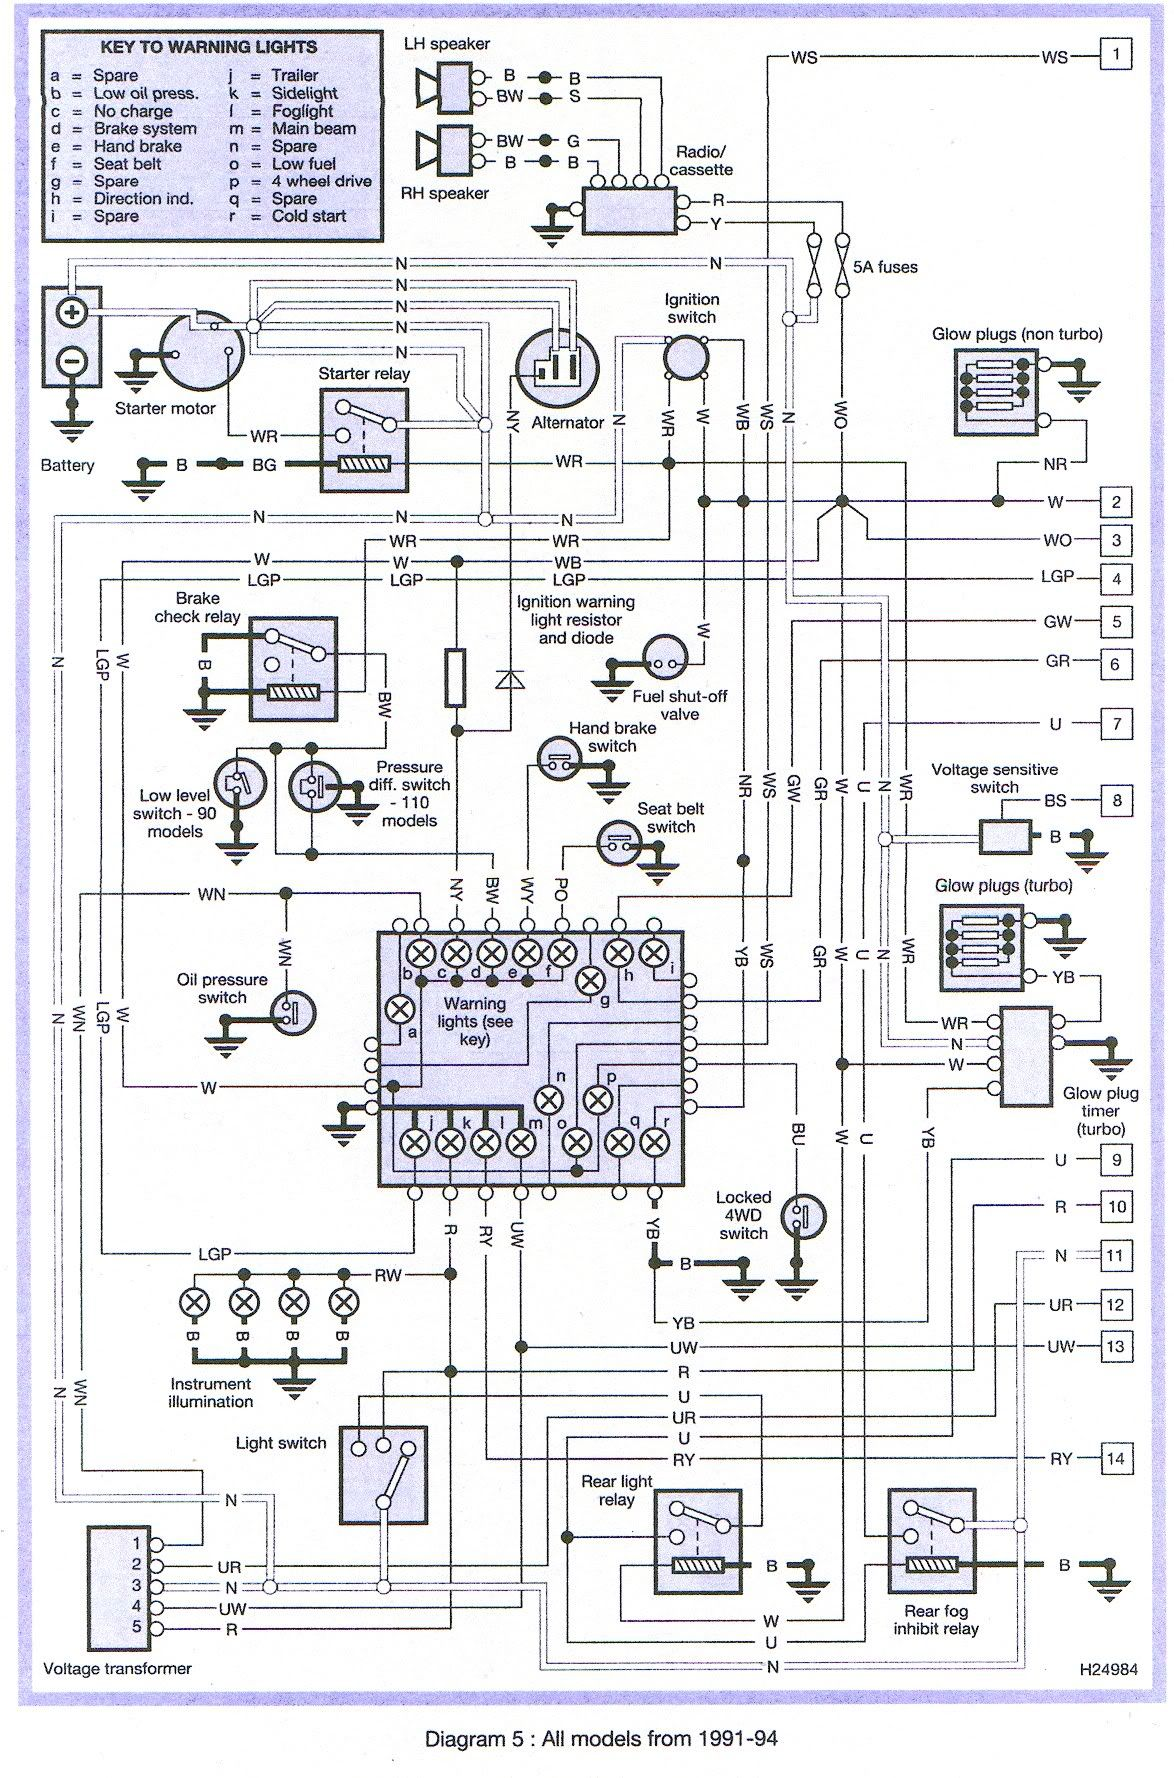 07629544bfff38ad2881b2c21312c6e6 land rover discovery wiring diagram manual repair with engine land rover discovery td5 fuse box diagram at gsmx.co